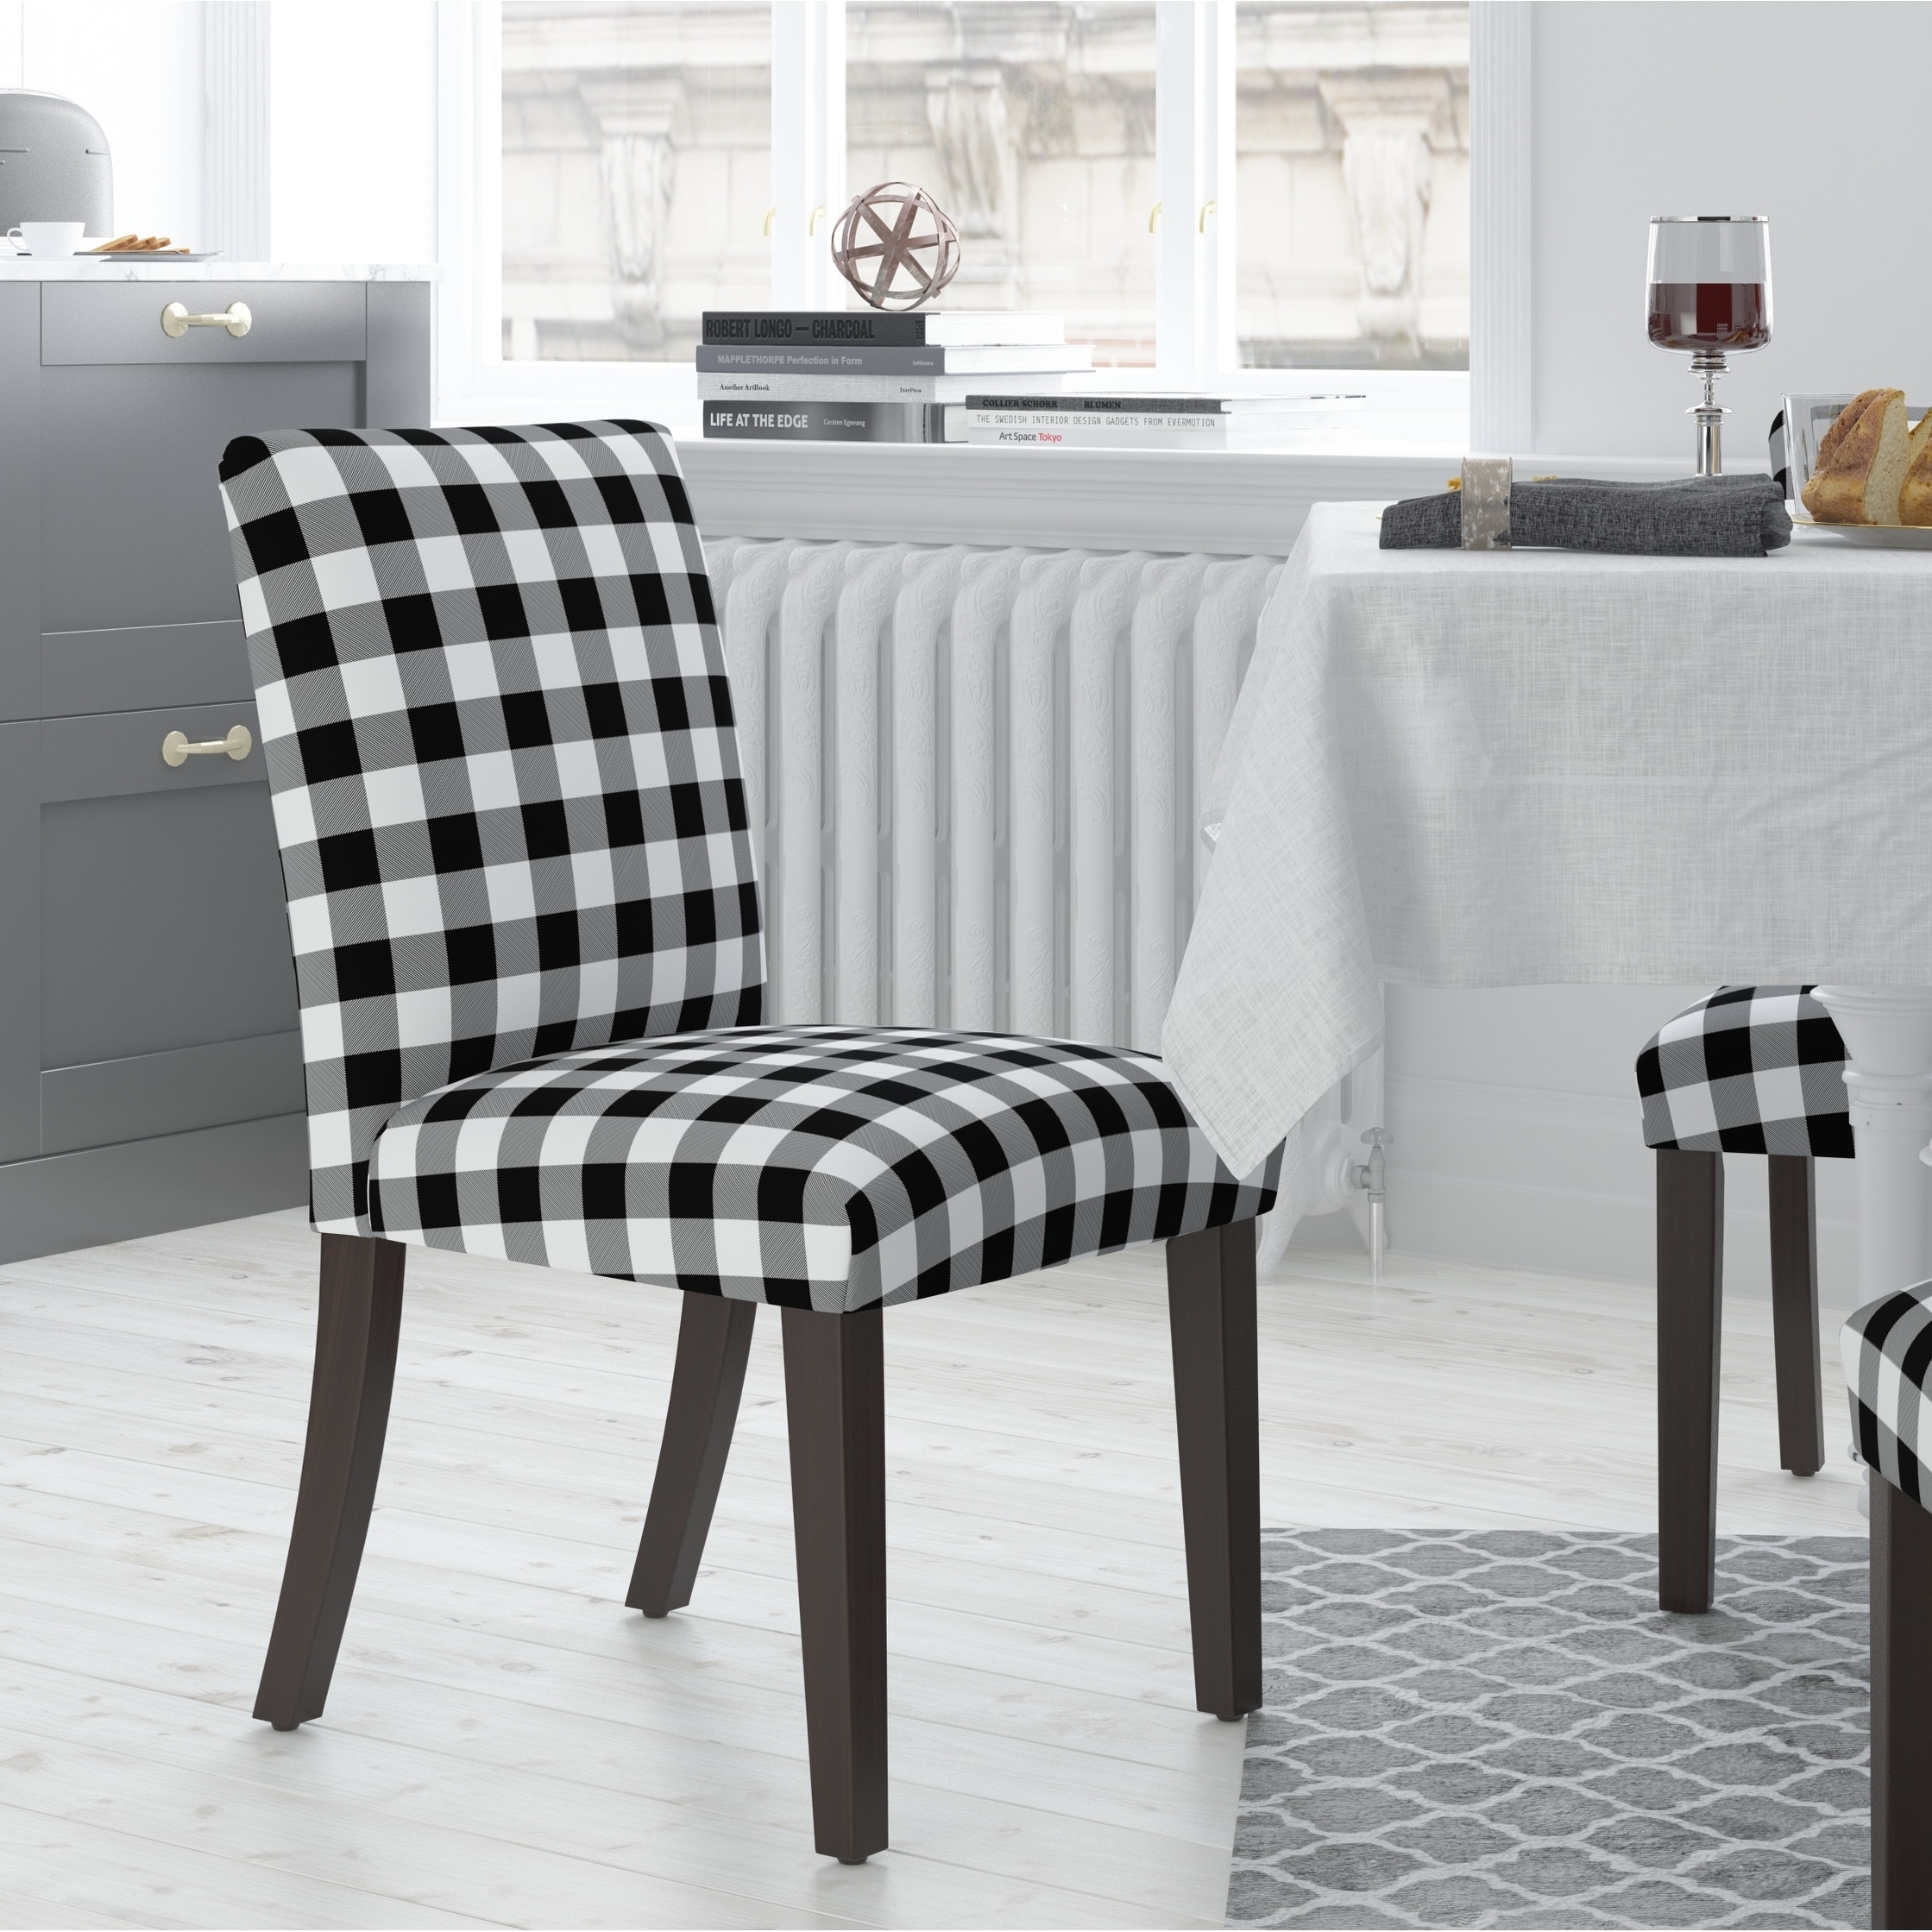 Ordinaire Skyline Furniture Dining Chair In Classic Gingham